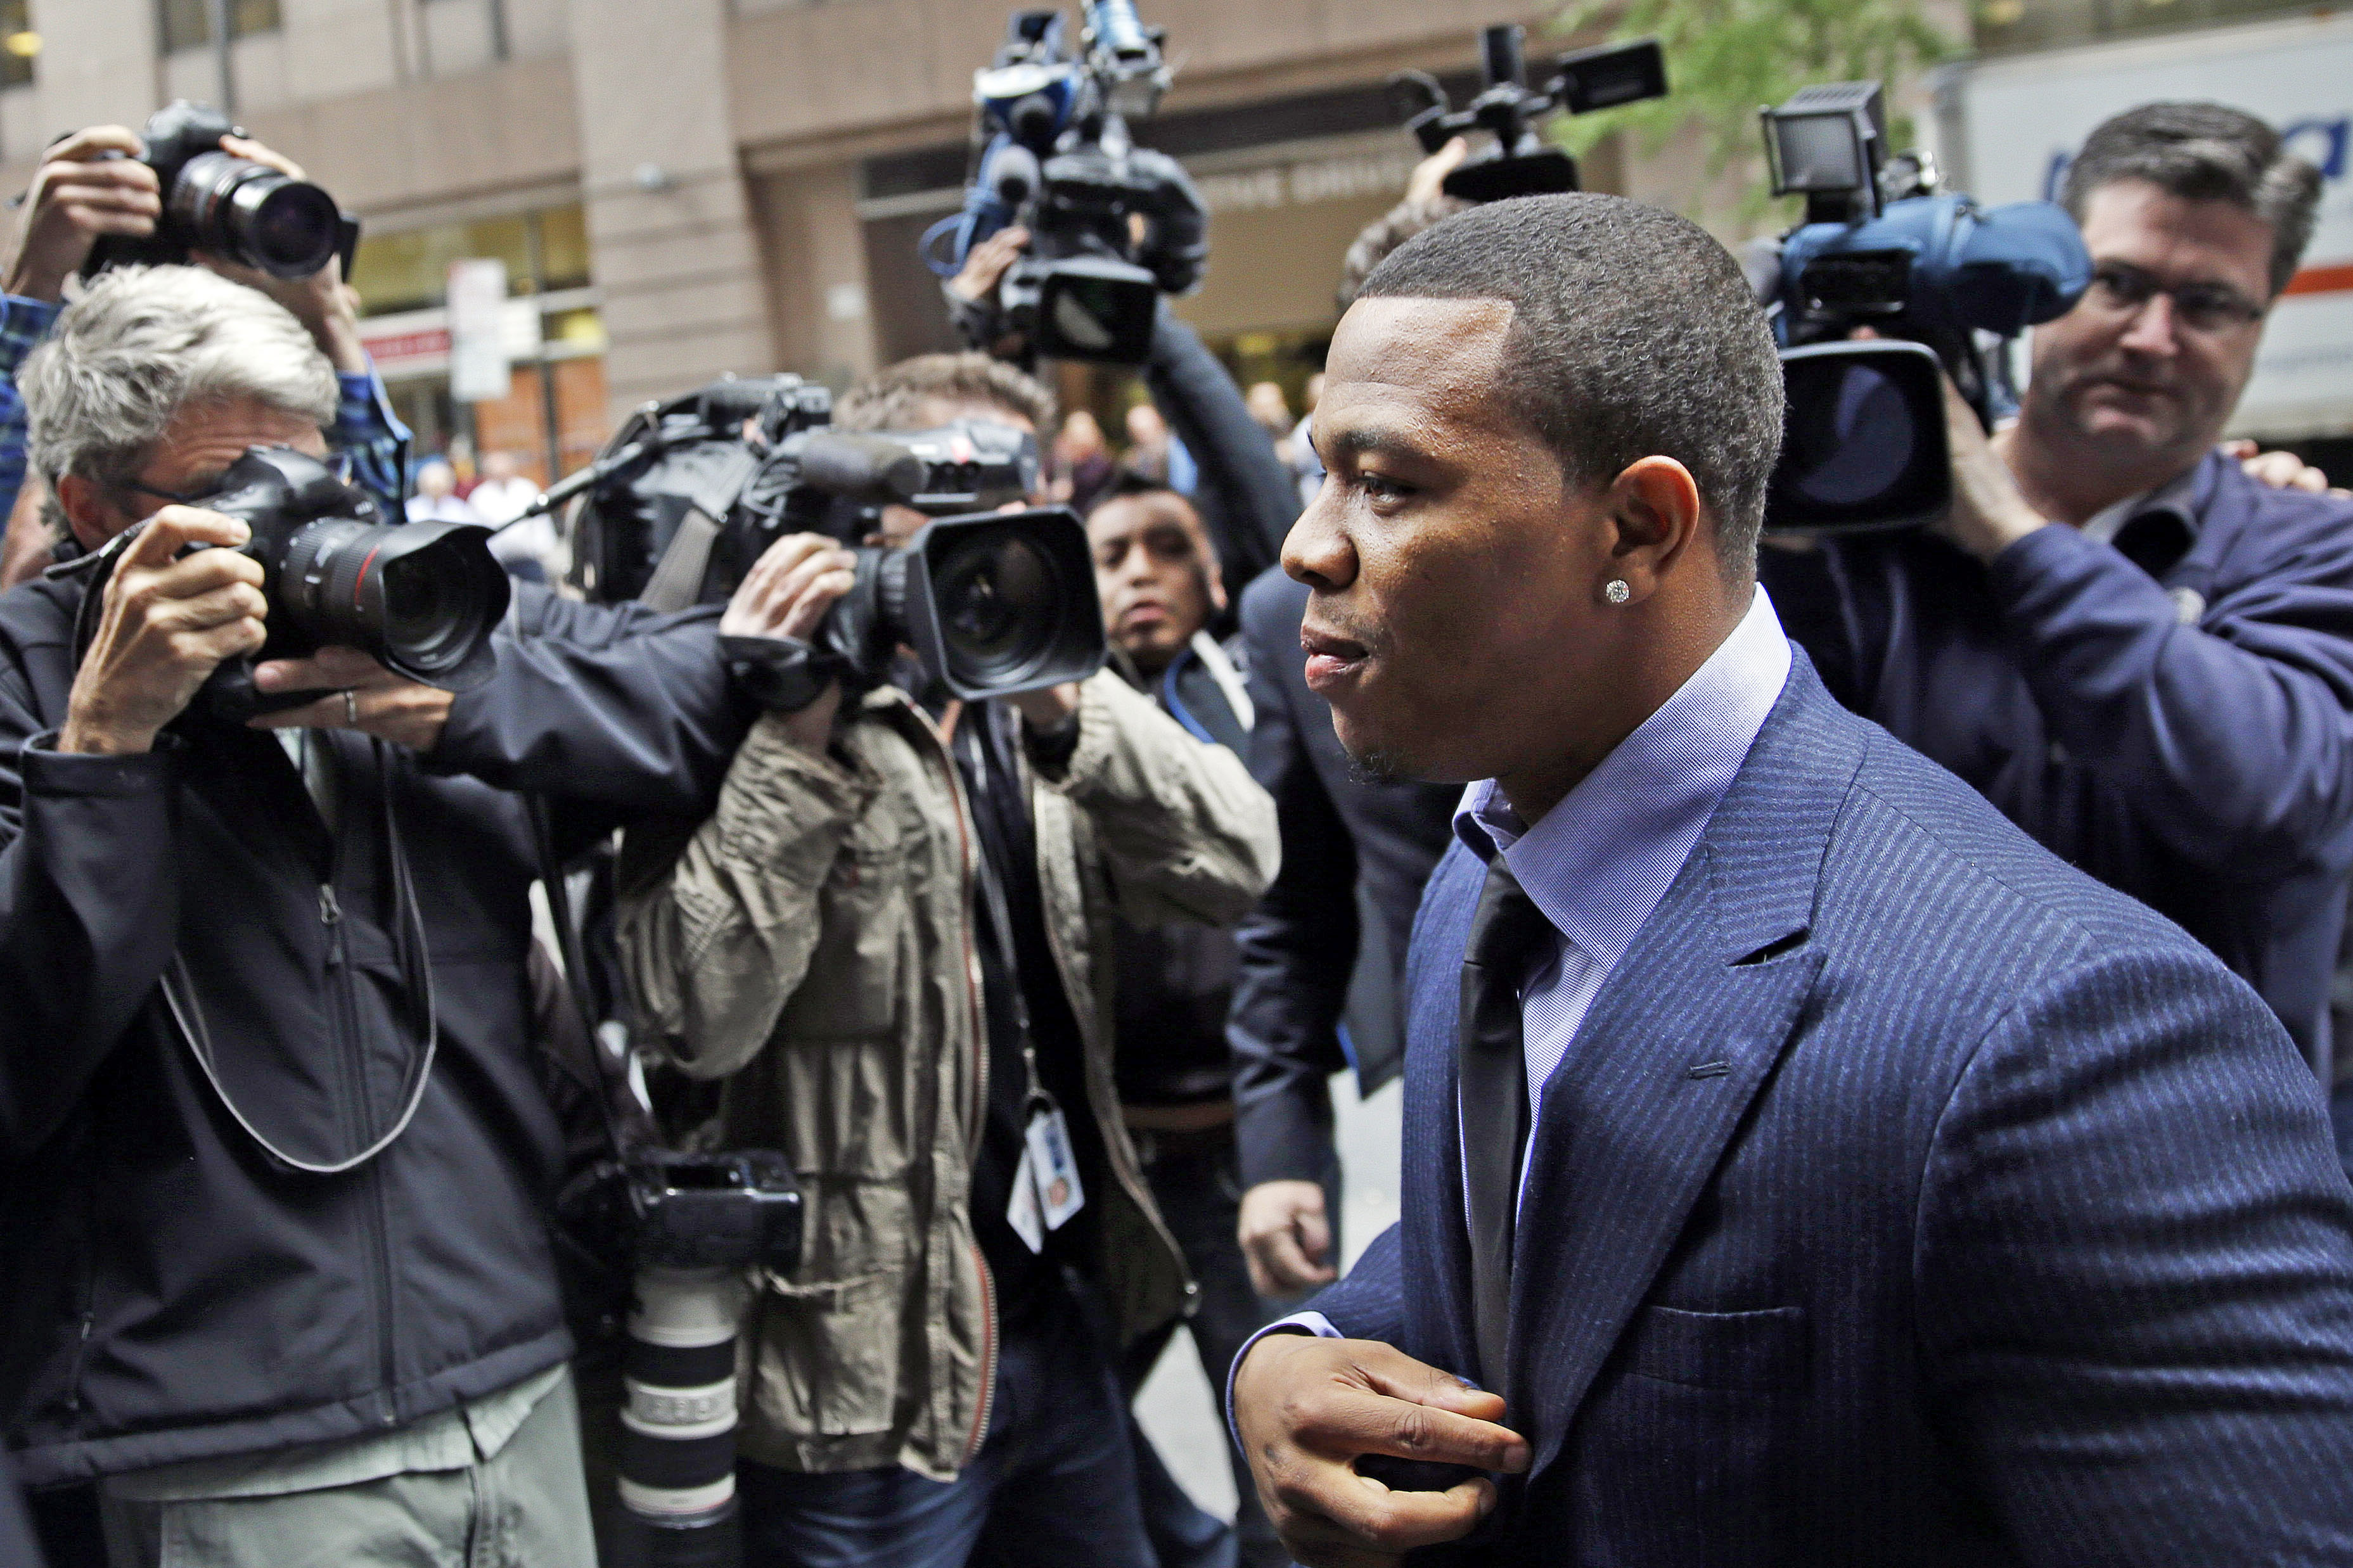 Ray Rice arrives for an appeal hearing of his indefinite suspension from the NFL on Nov. 5, 2014, in New York.